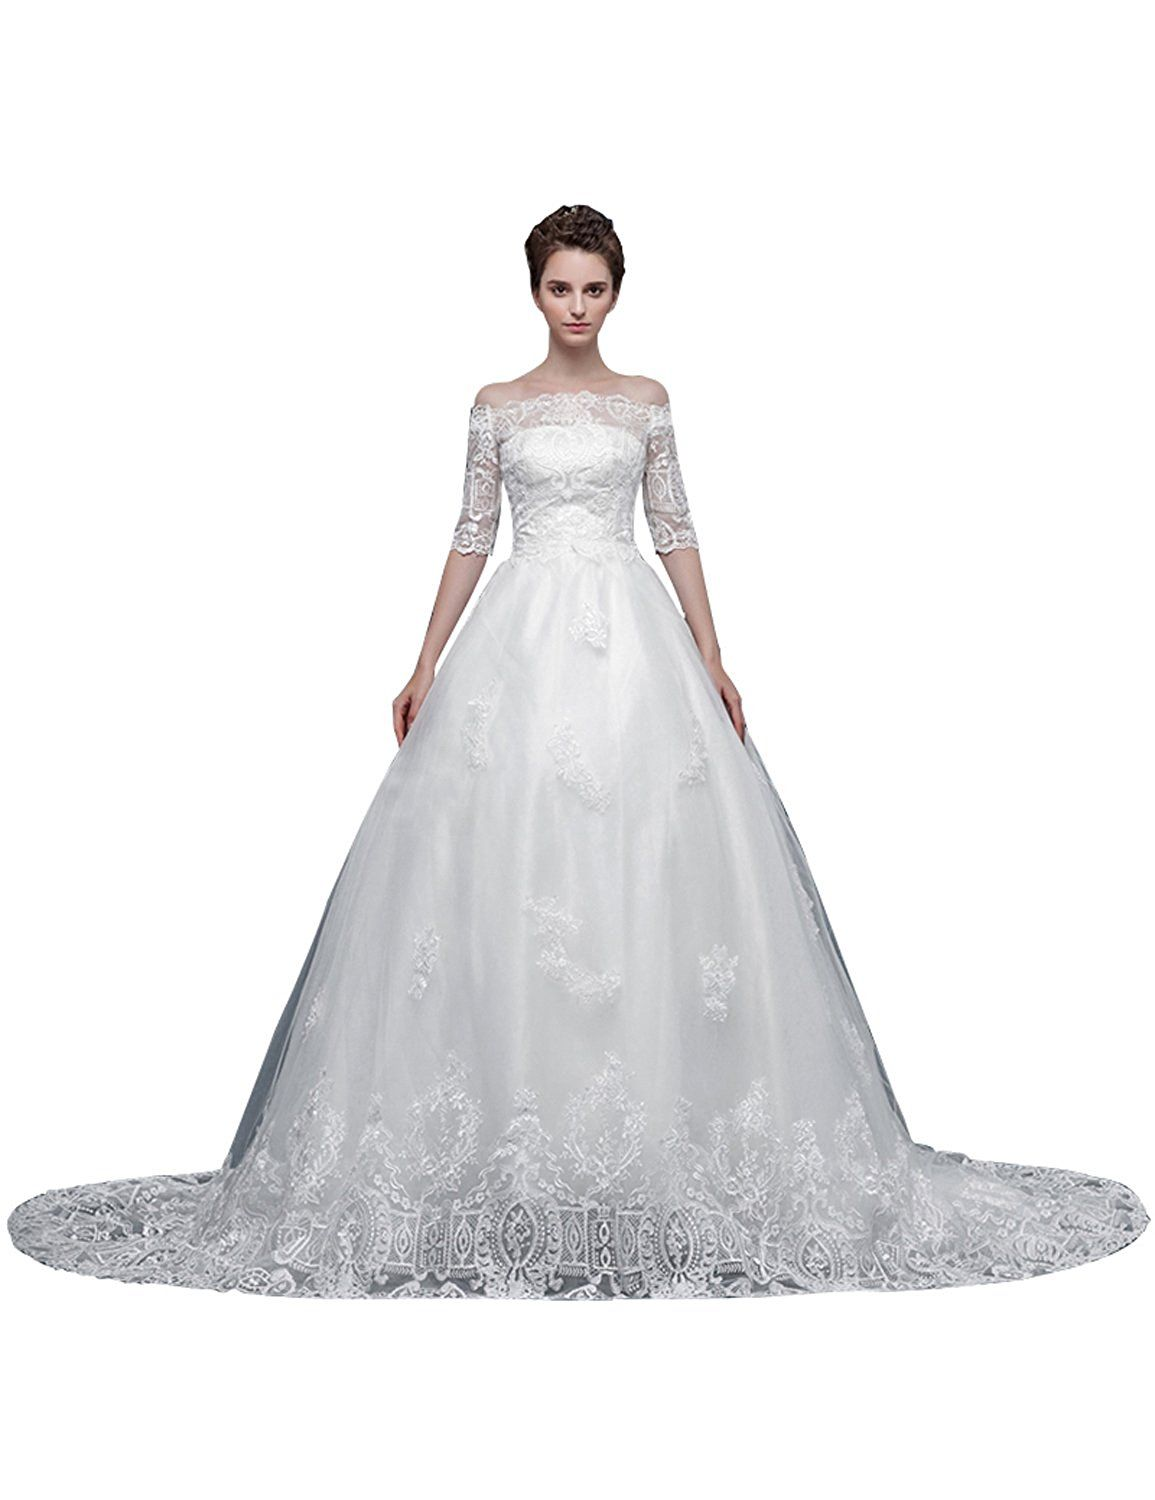 Dj womenus chapel train lace sleeves wedding dress dj click on